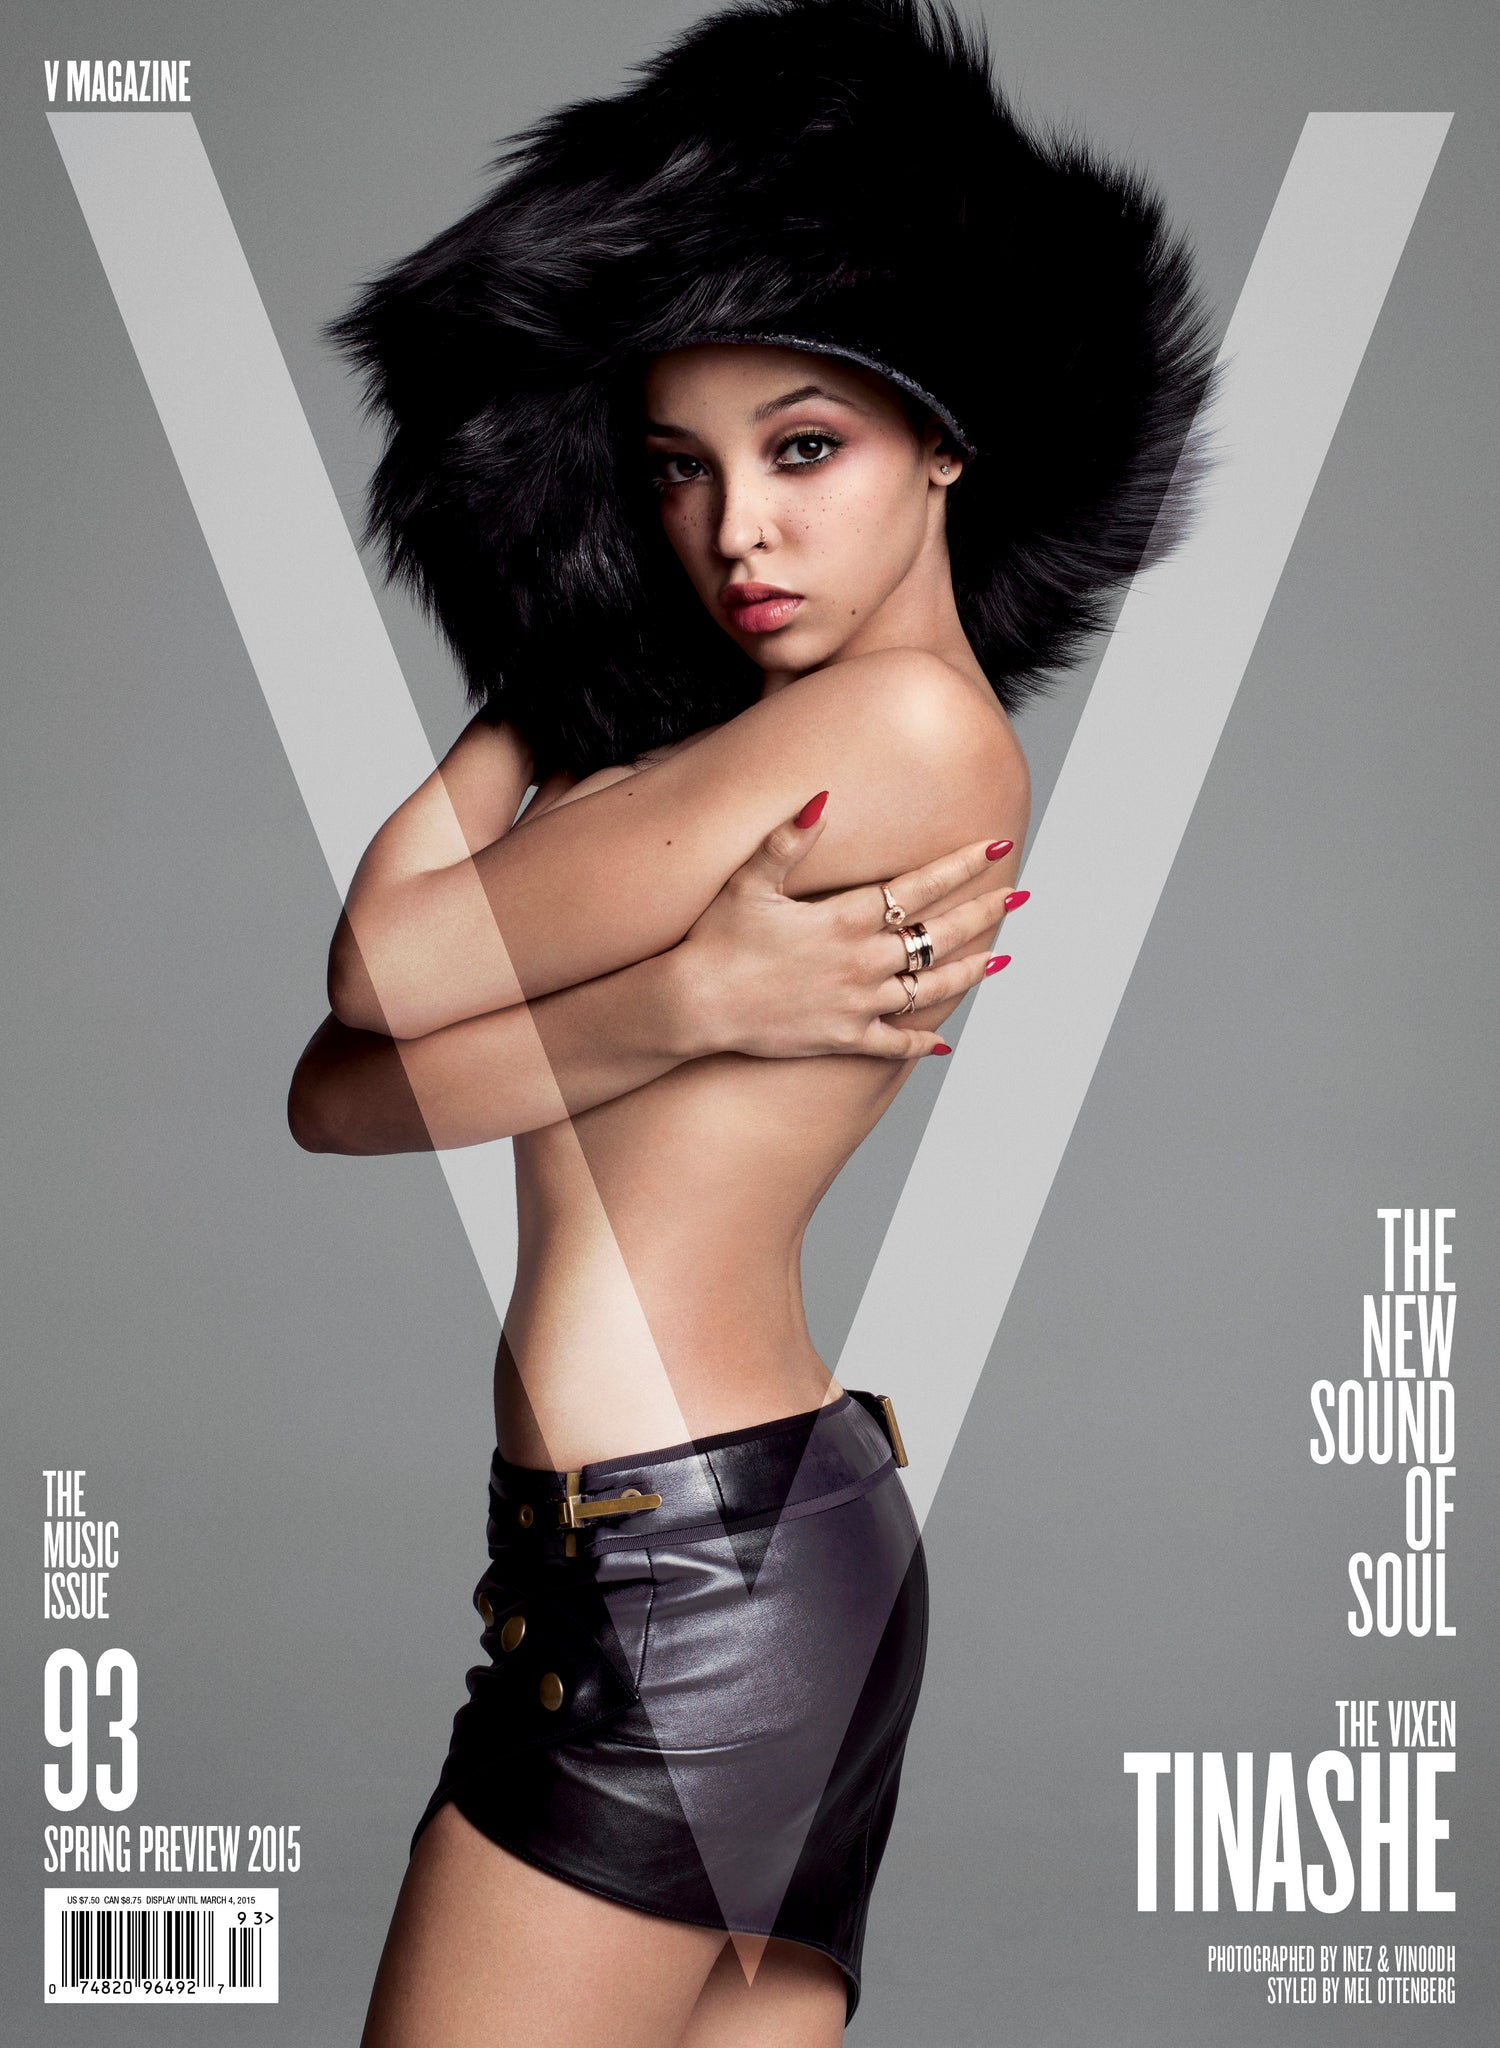 V93 THE MUSIC ISSUE